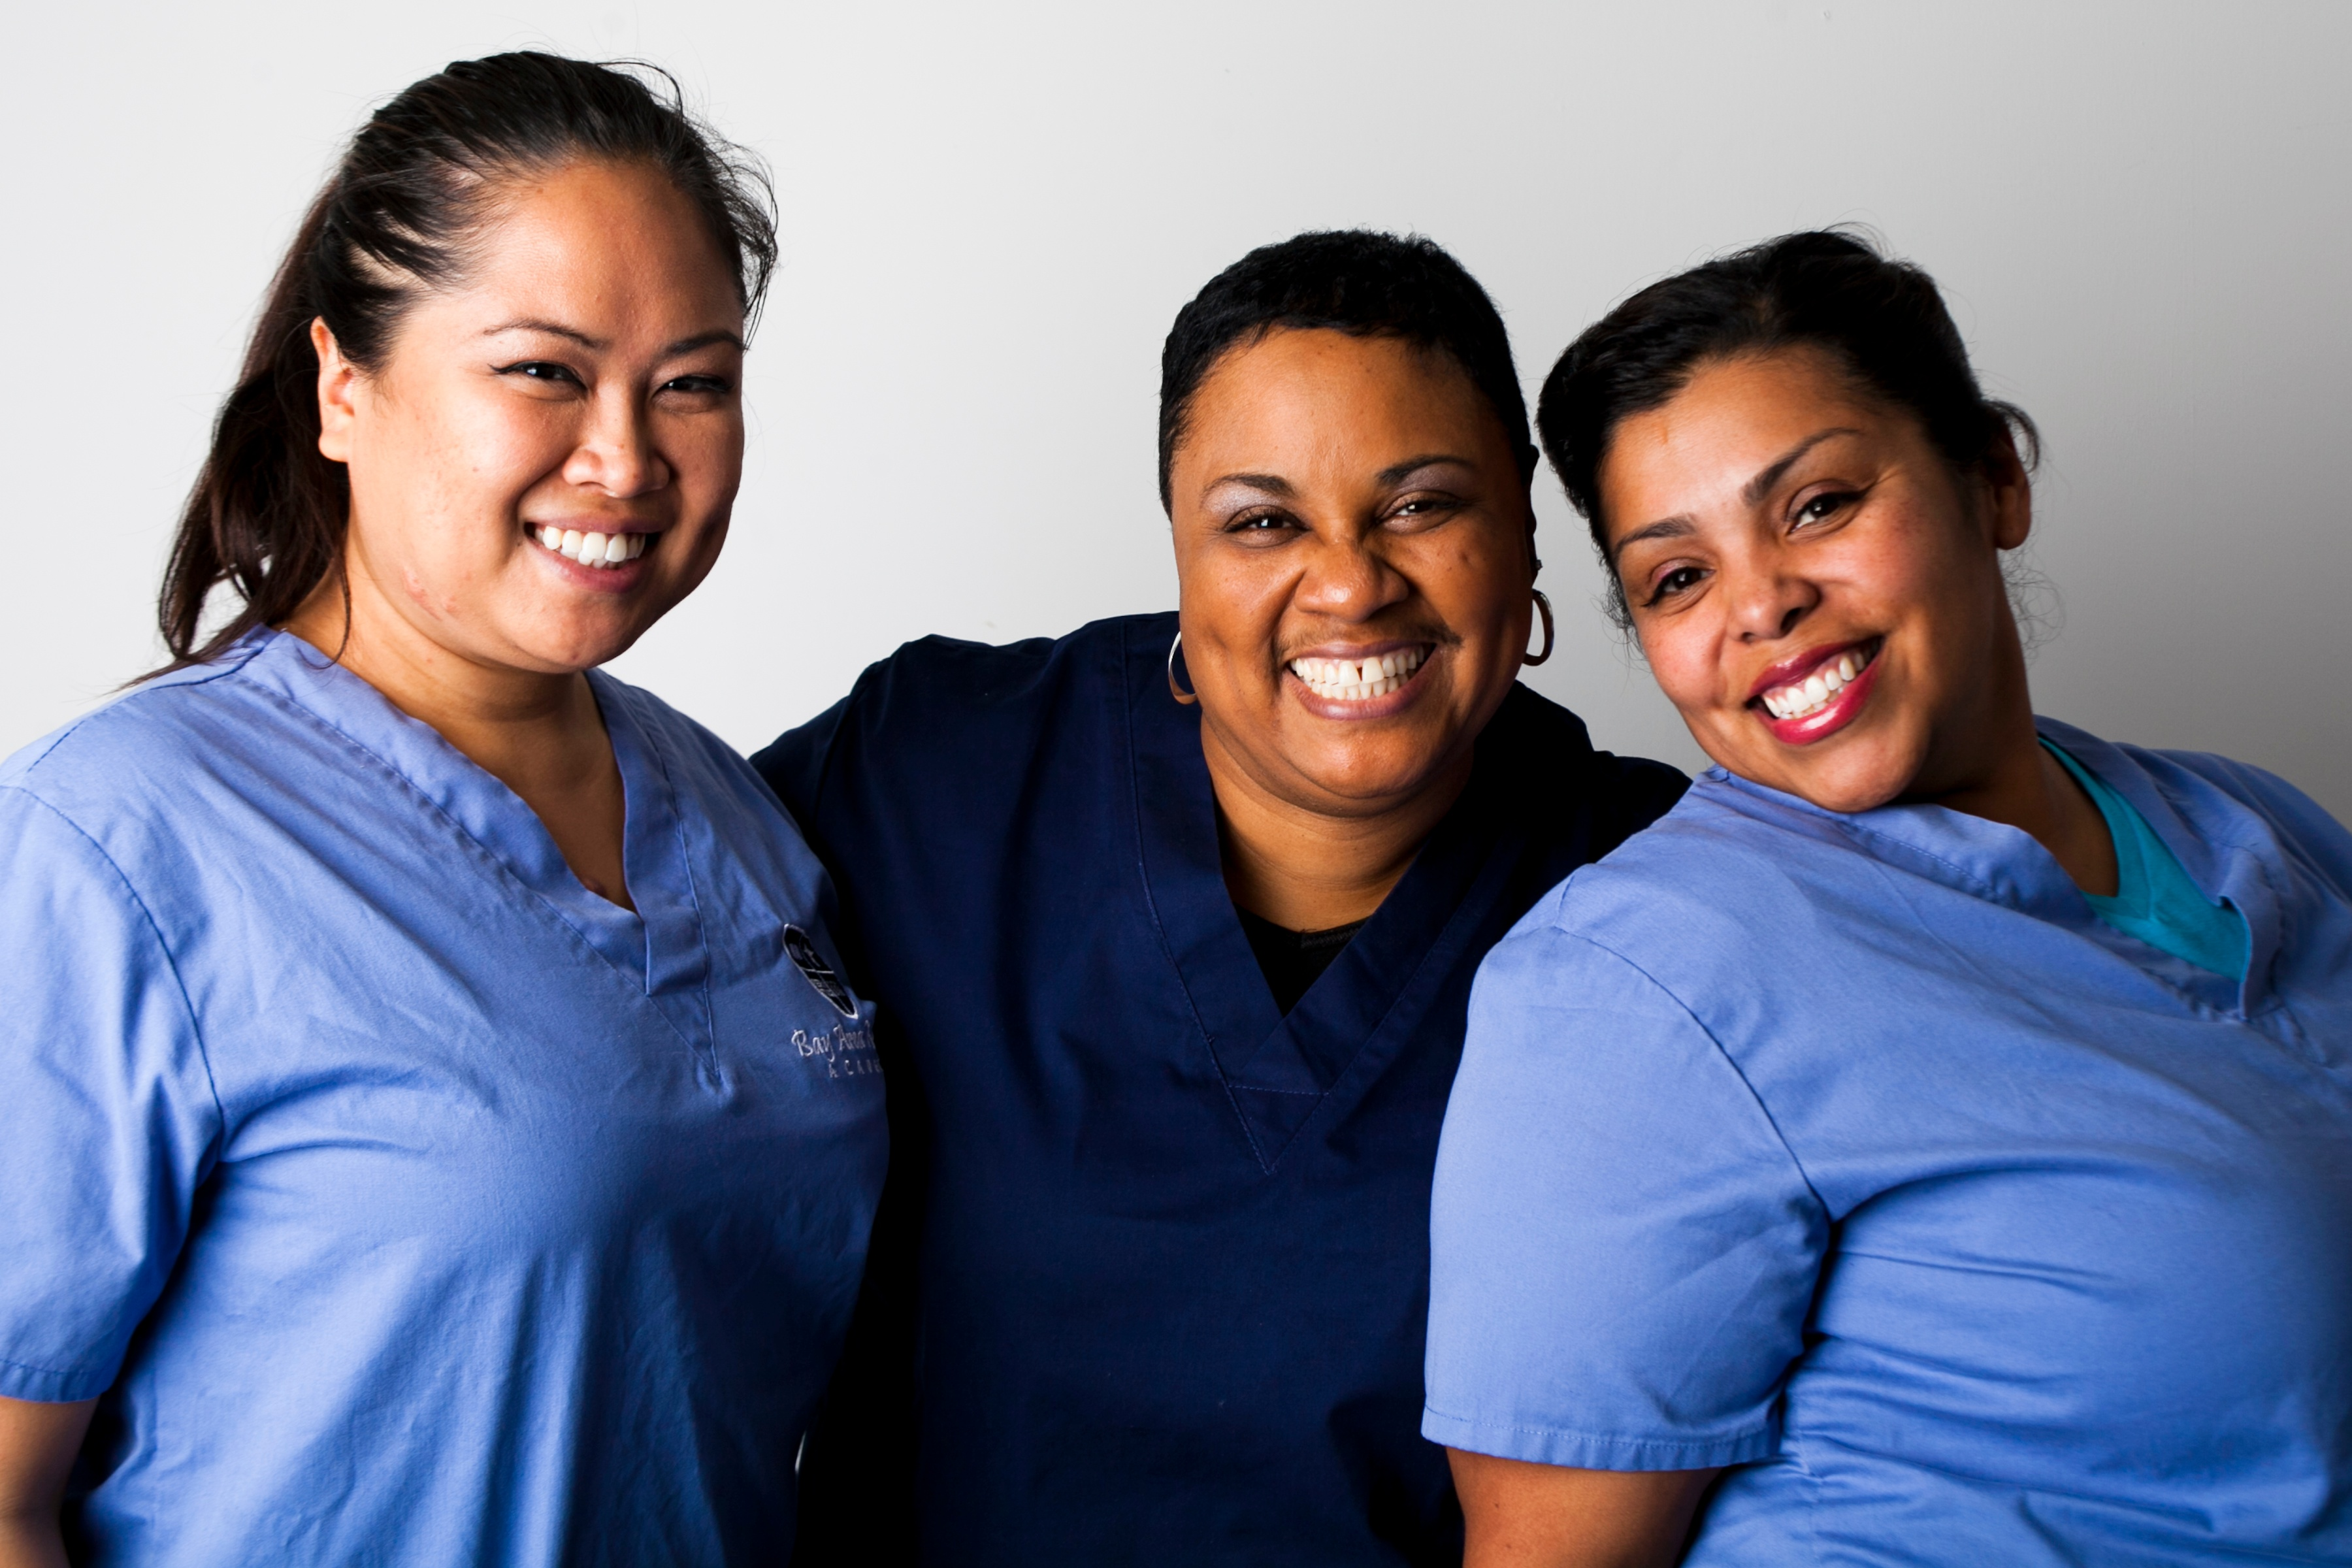 Medical Assisting Program Or Phlebotomy Course Which Is Right For